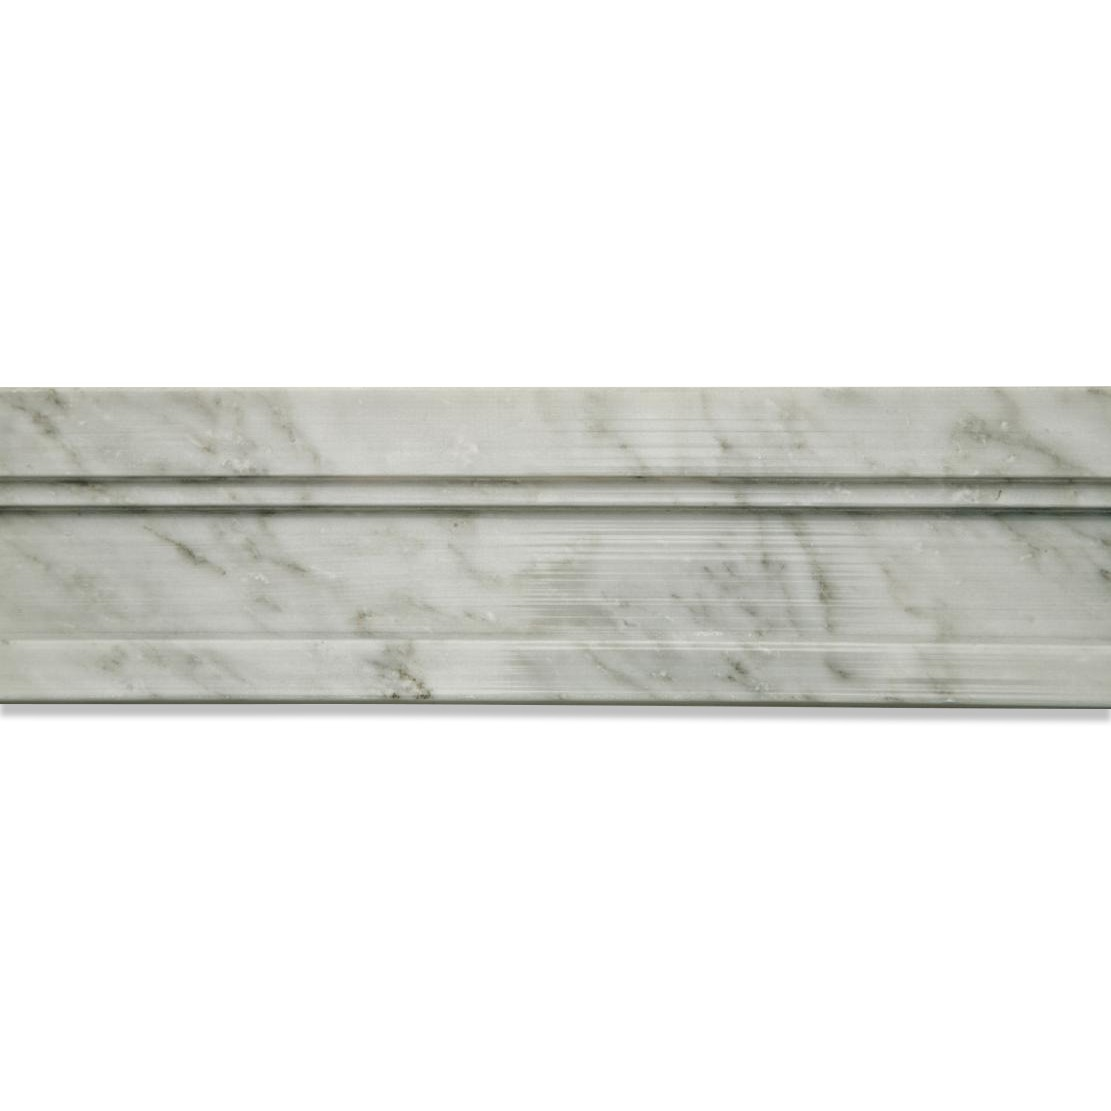 Chair Rail Tile Shop 2 X 12 Novel Chair Rail Polished Marble Tile Liner In